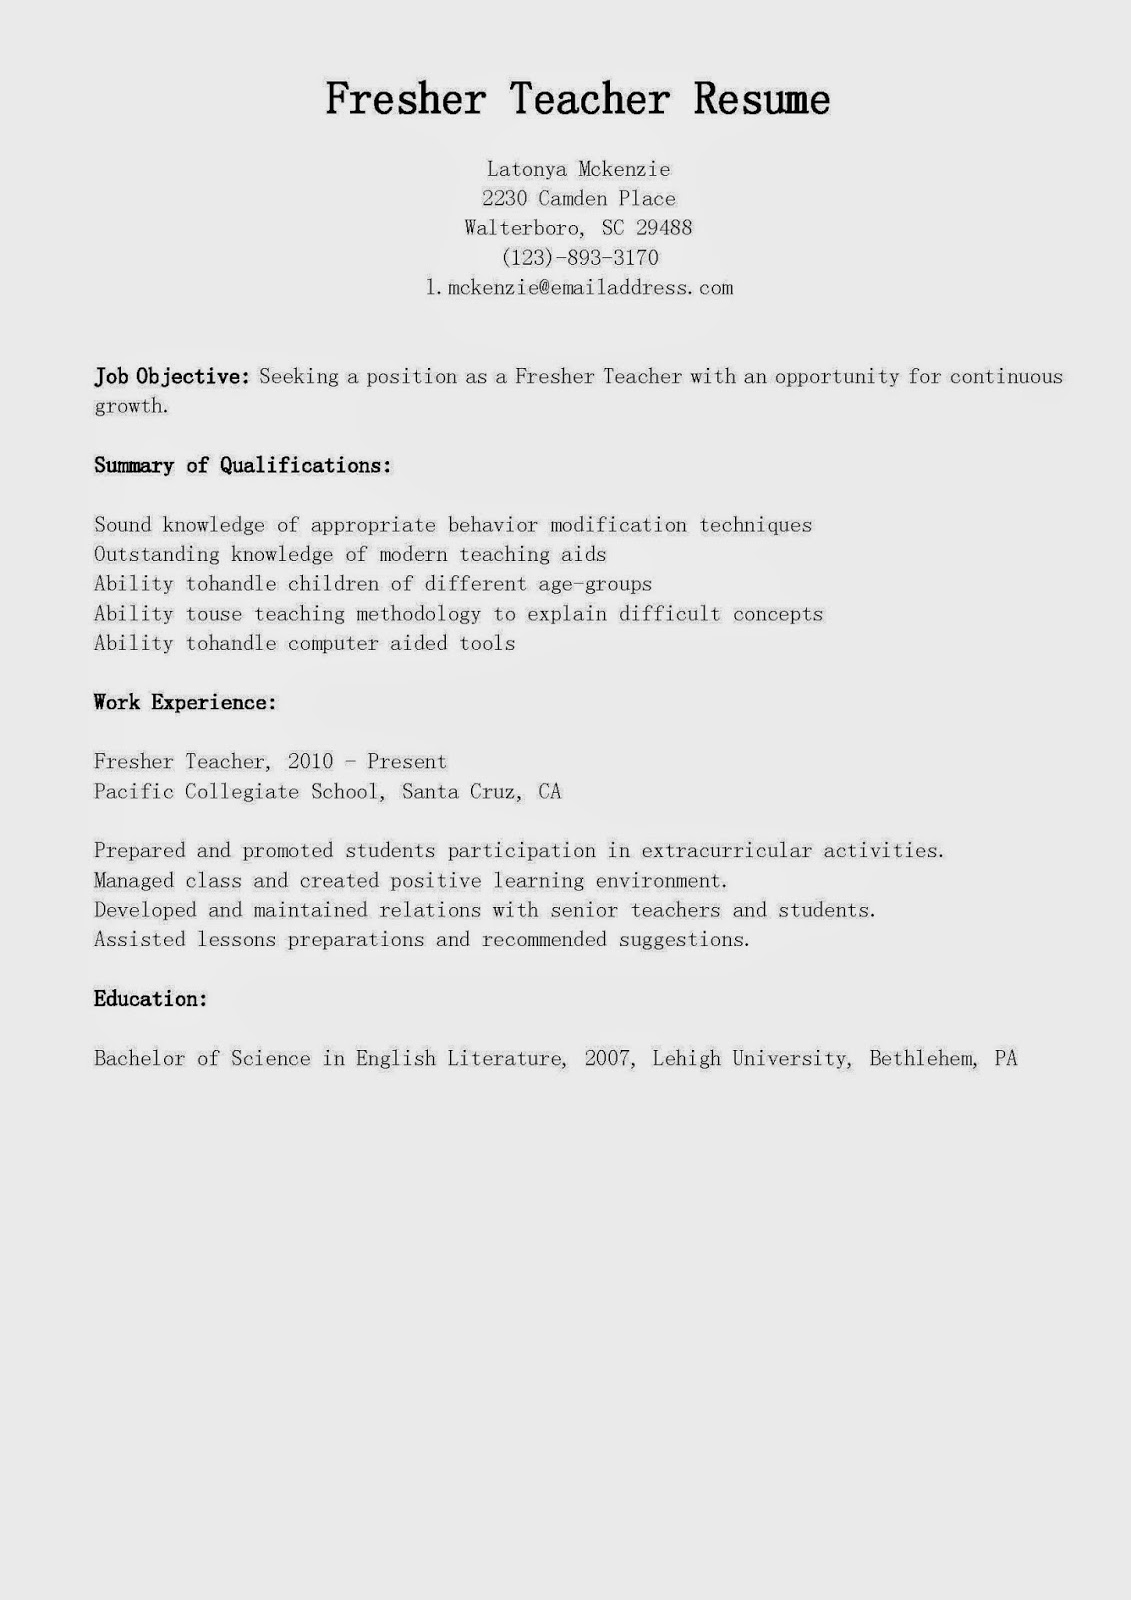 Resume samples fresher teacher resume sample for Sample resume for teaching profession for freshers